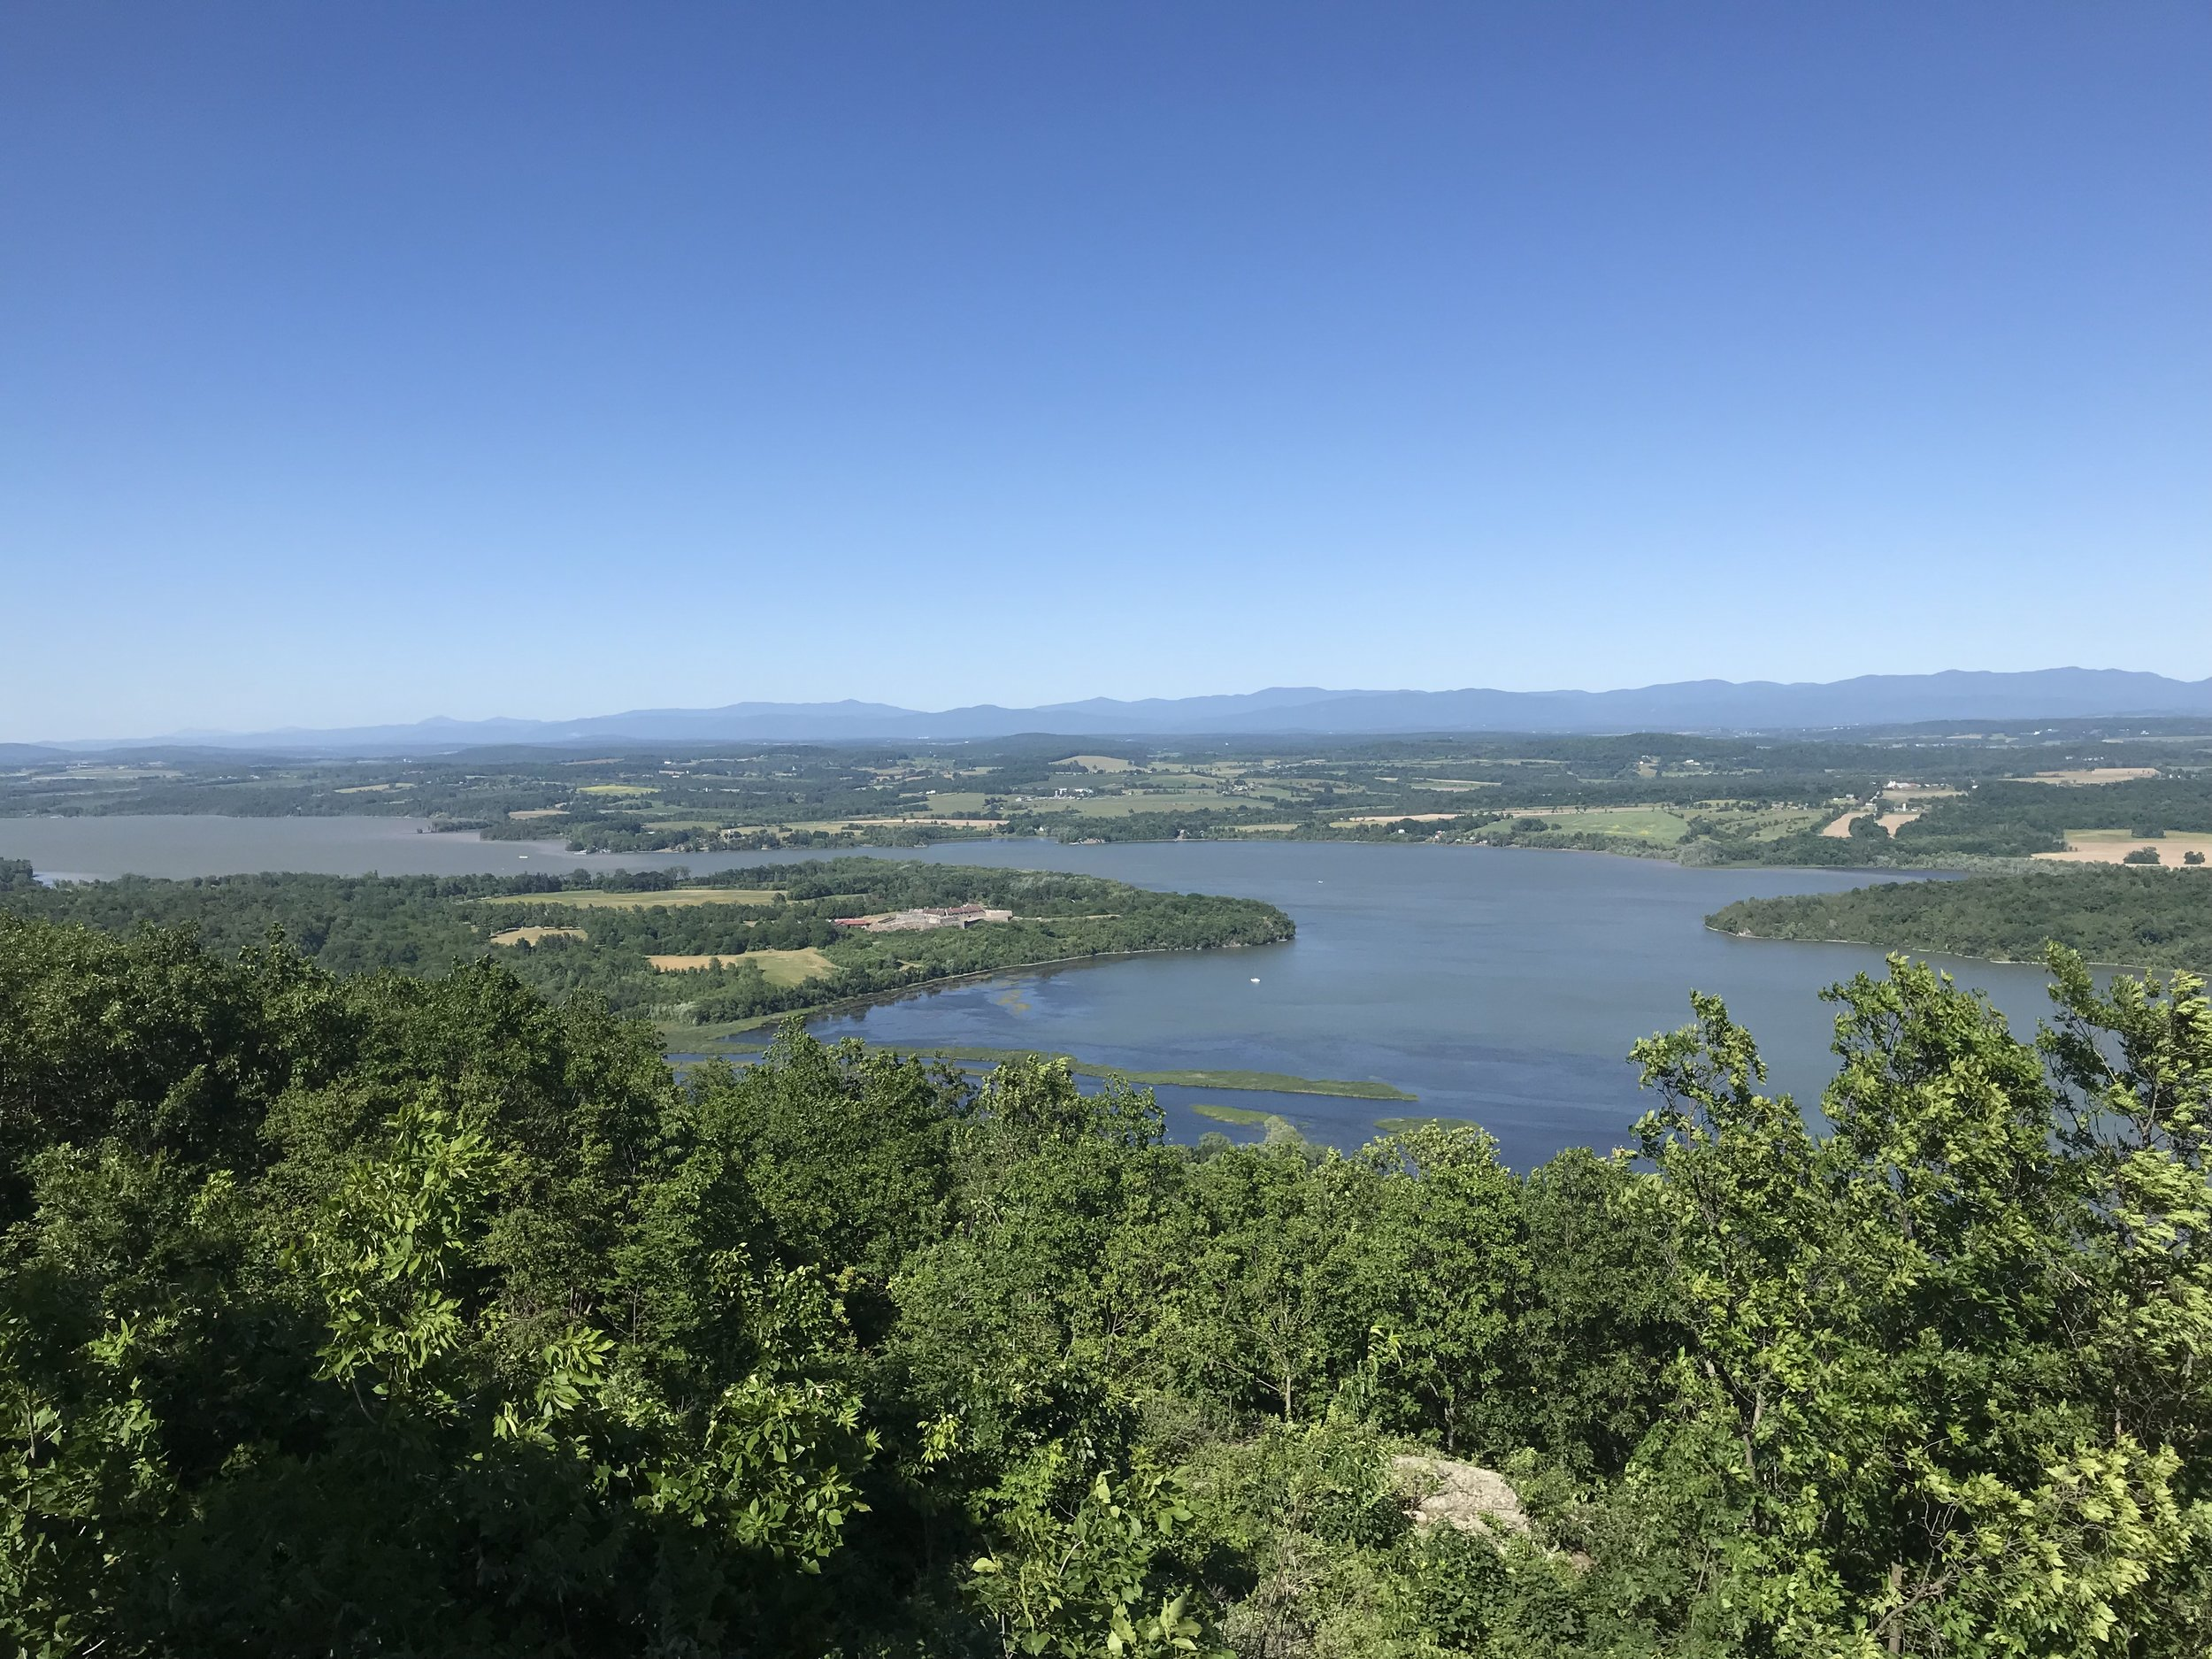 Here is the panorama from Mt. Defiance. Ft. Ticonderoga is on the left, with the fort structure clearly visible. The peninsula jutting out on the right is Mt. Independence where most of the rebel troops were headquartered. It will forever be a mystery why General St. Clair did not think it necessary to fortify this hill.